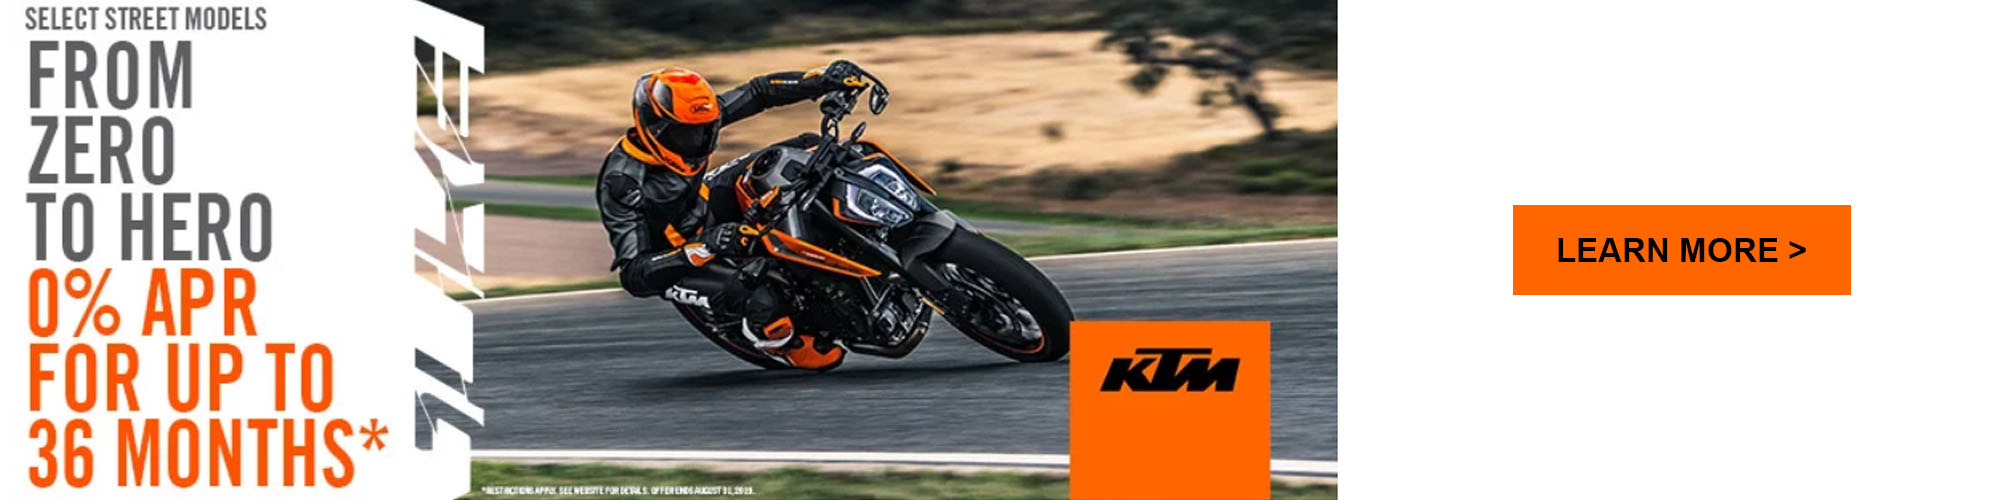 KTM From Zero to Hero Promotion at Ride Center USA